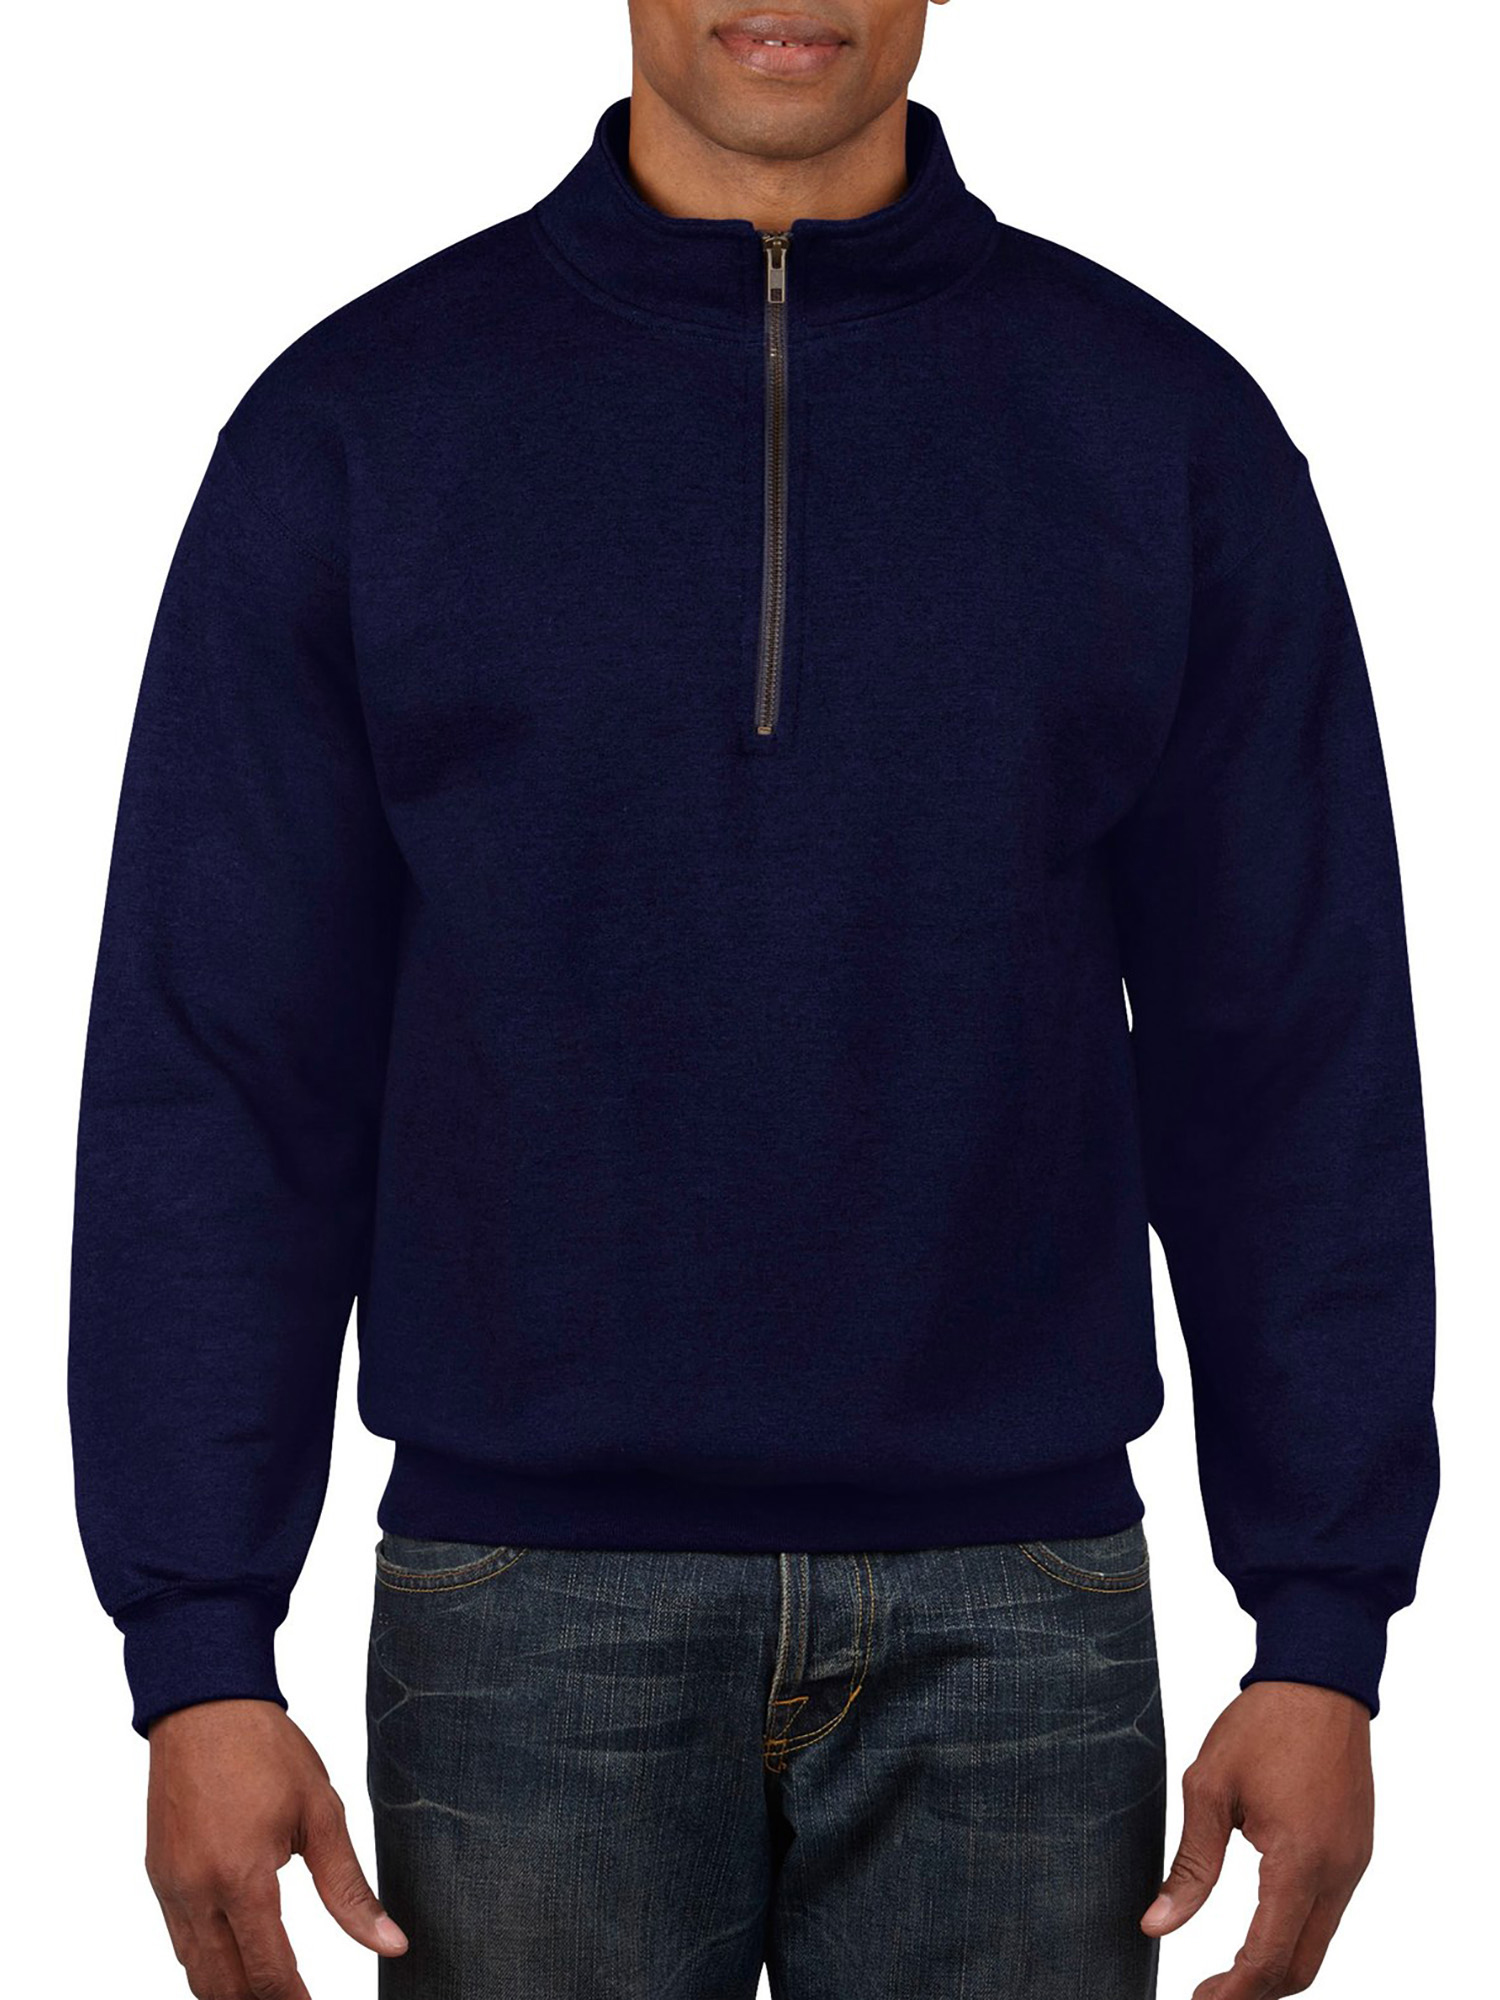 Big Men's 1/4 Zip Cadet Collar Sweatshirt, 2XL